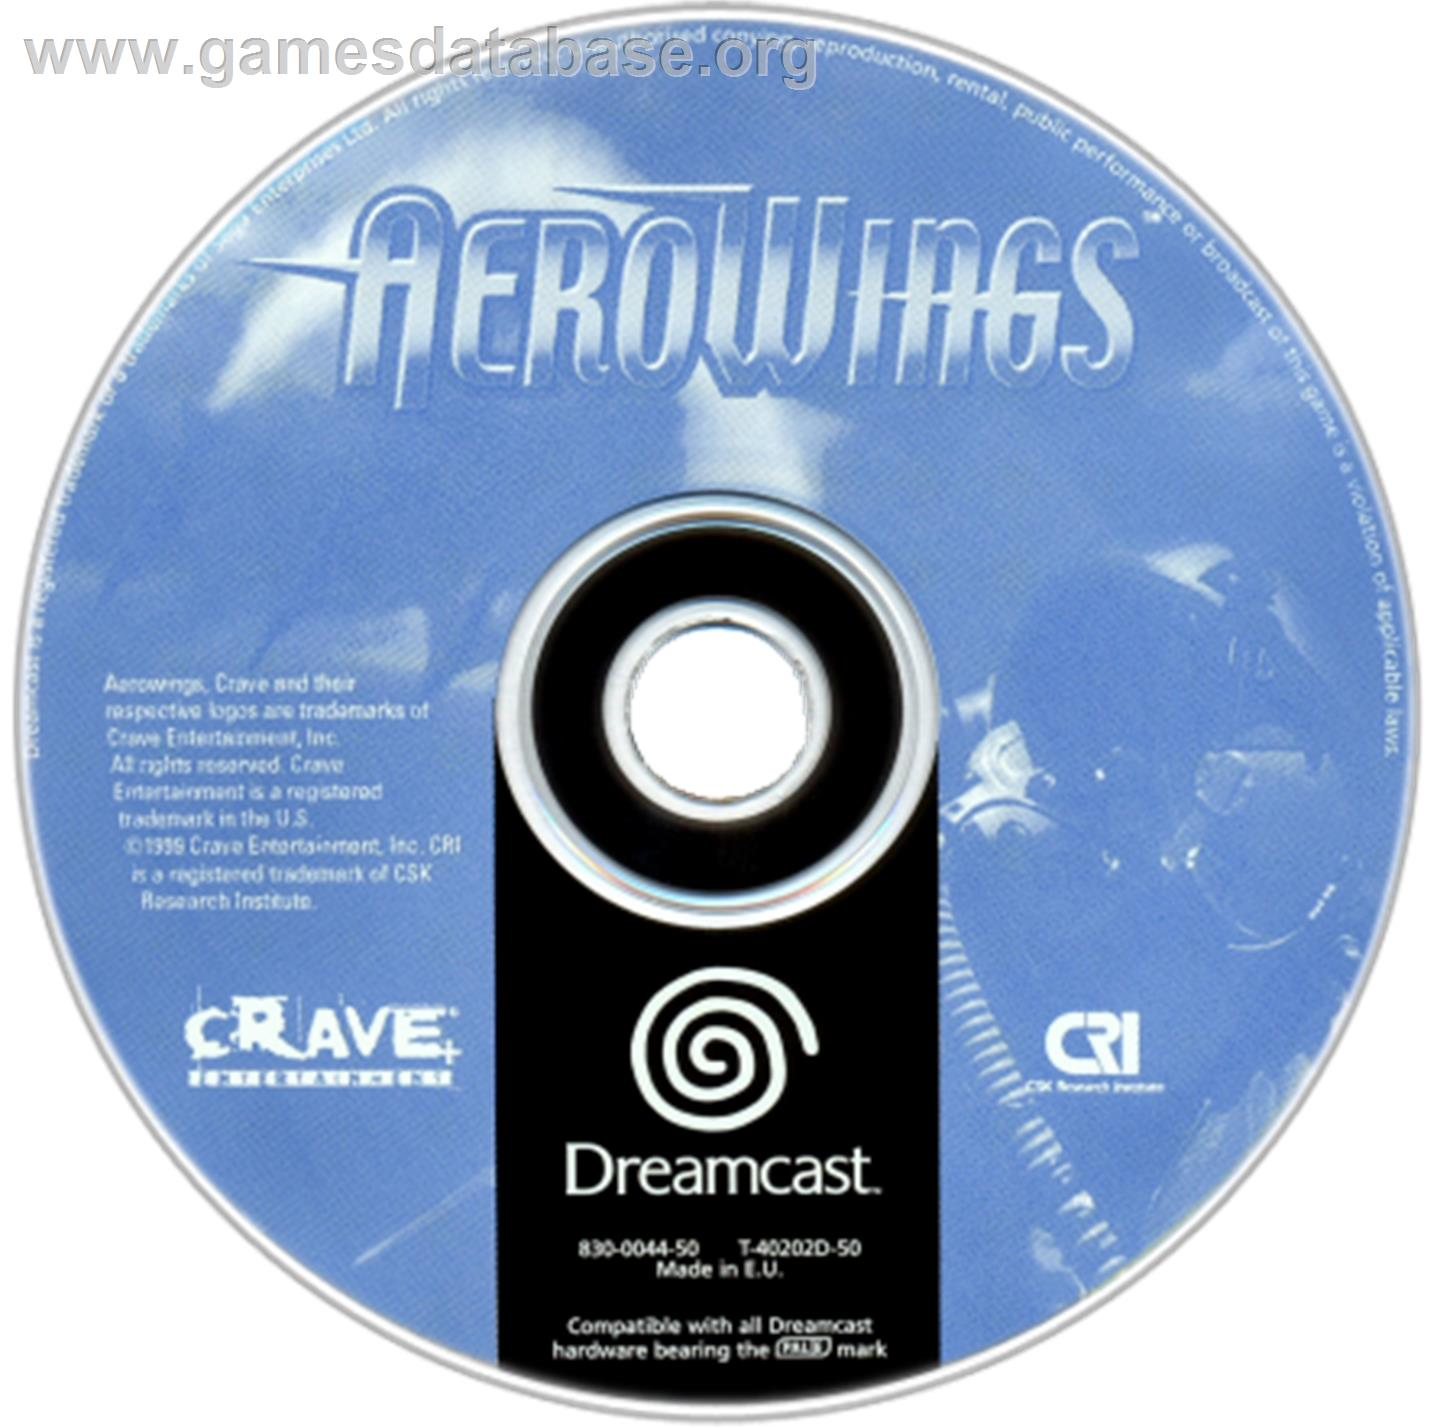 Artwork on the CD for Aerowings on the Sega Dreamcast.